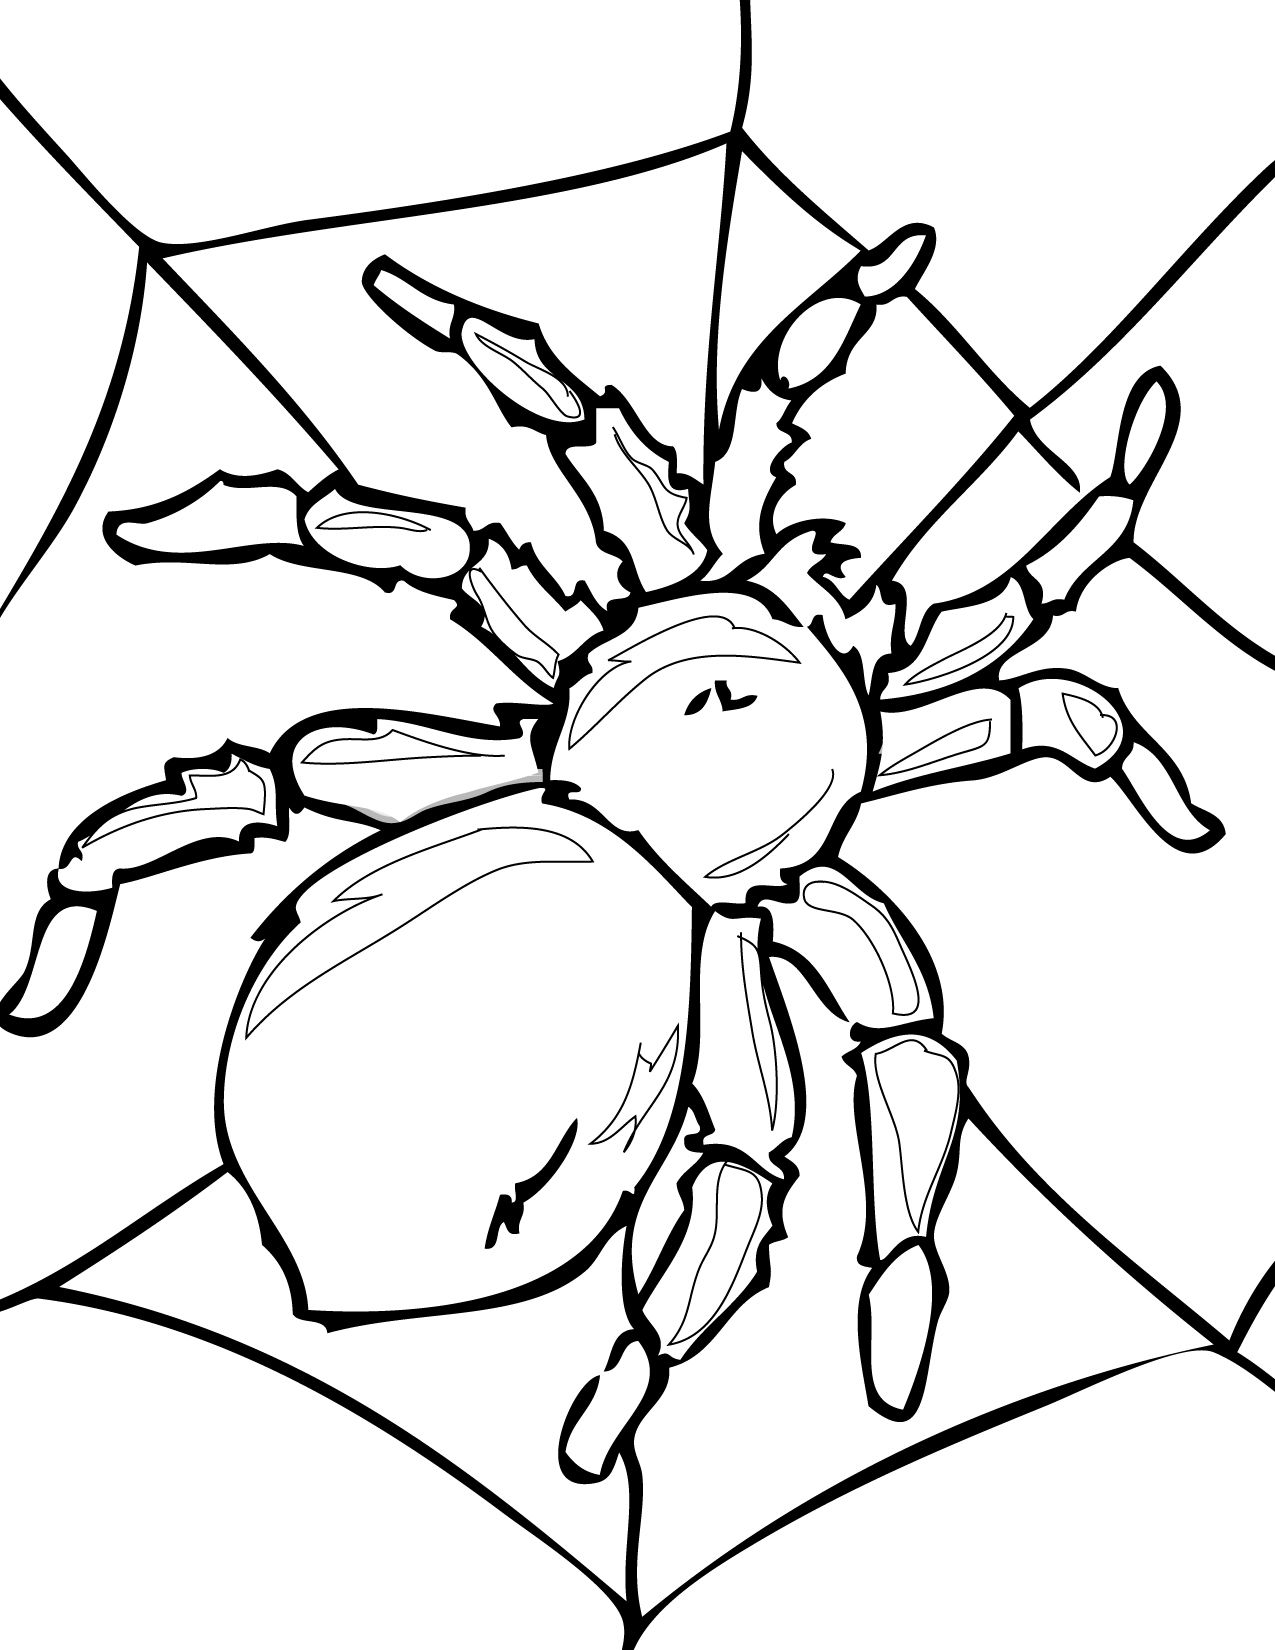 spider coloring pages for kids free online printable coloring pages sheets for kids get the latest free spider coloring pages for kids images - Pictures Of Spiders To Colour In